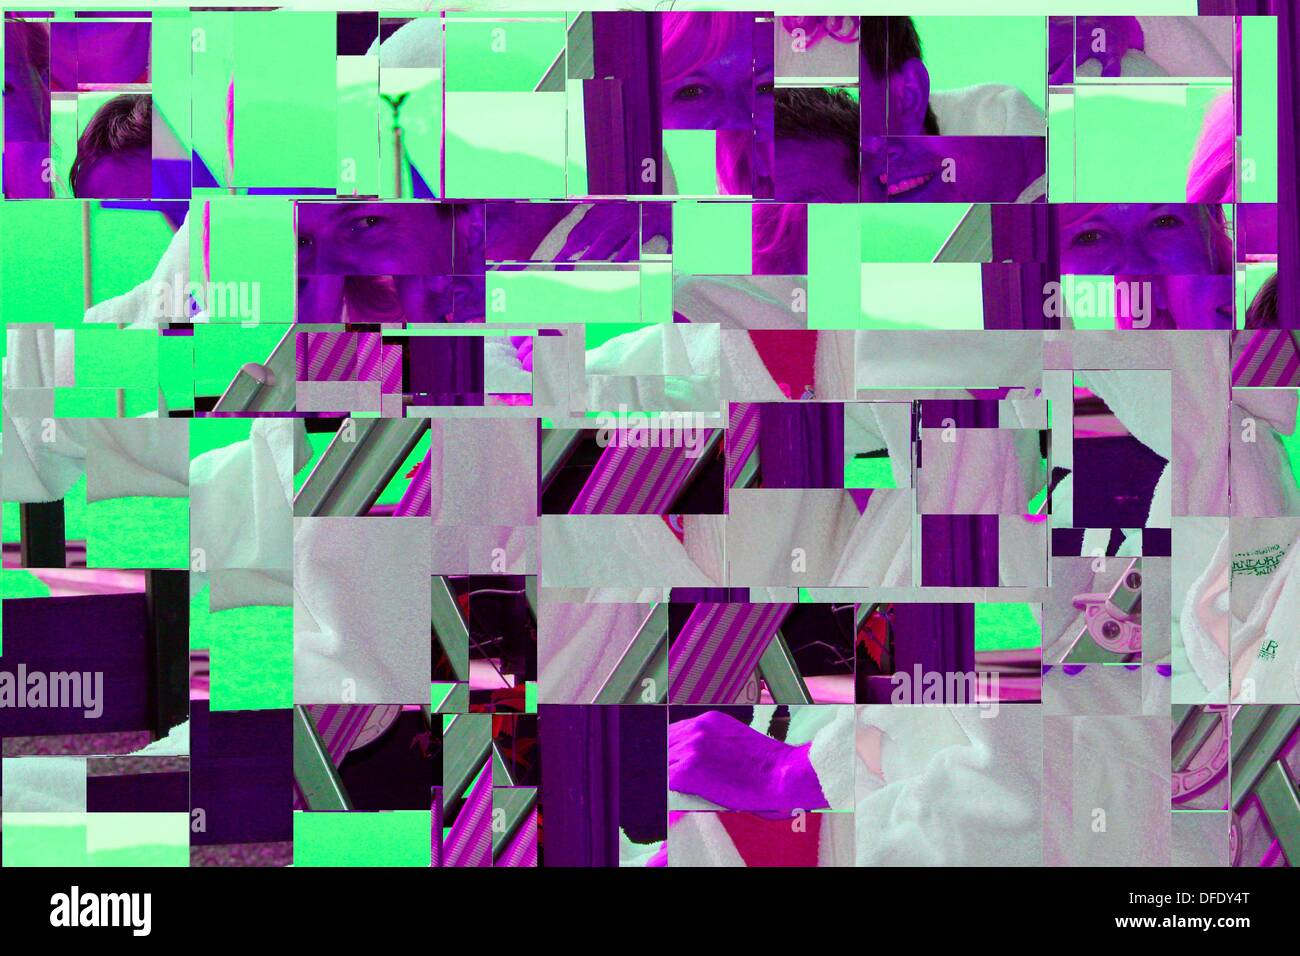 digitale Kunst Stockbild